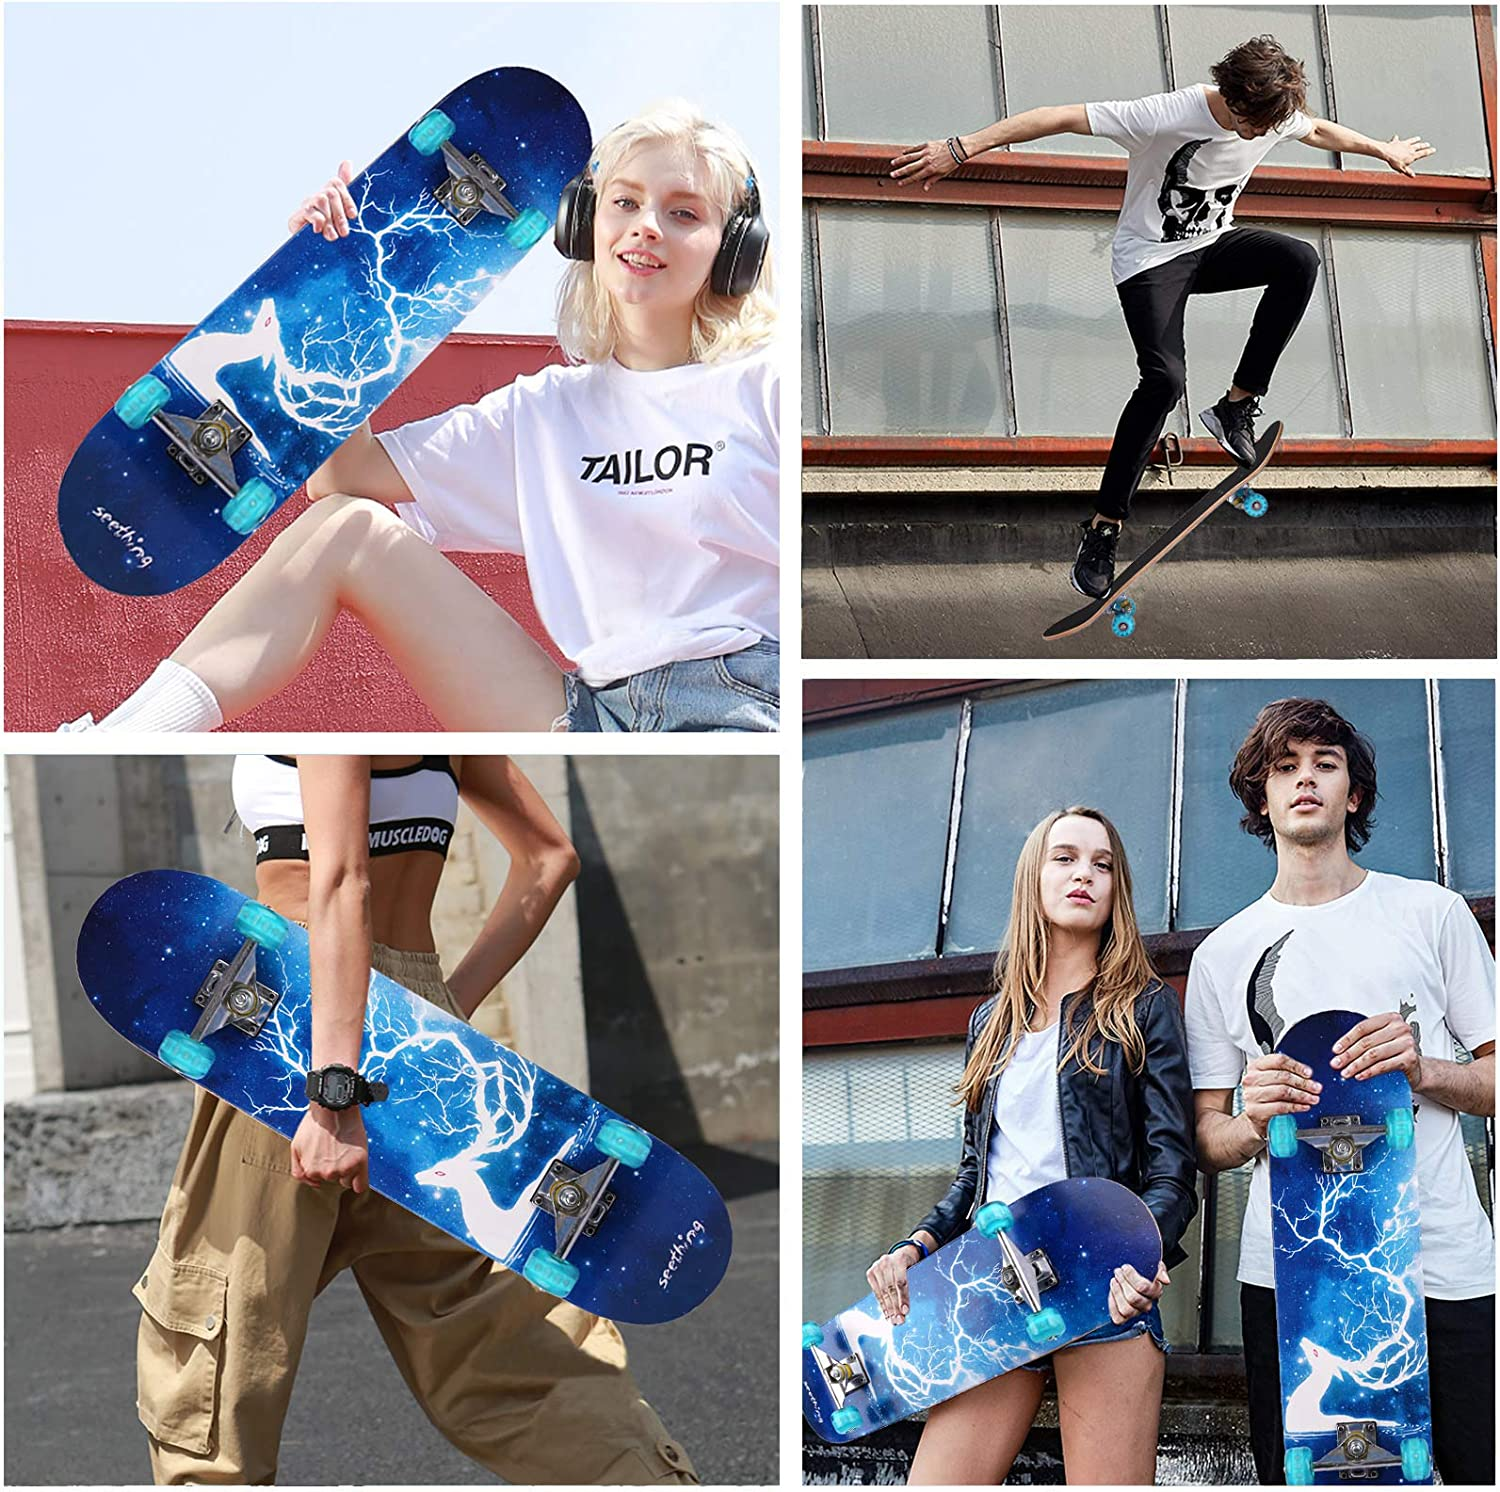 31x8 Complete Skateboards,7 Layer Canadian Maple Double Kick Deck Concave Standard Skate Boards Skateboard for Girls Boys Youths Beginners Wemfg Skateboard for Kids Adults Teens